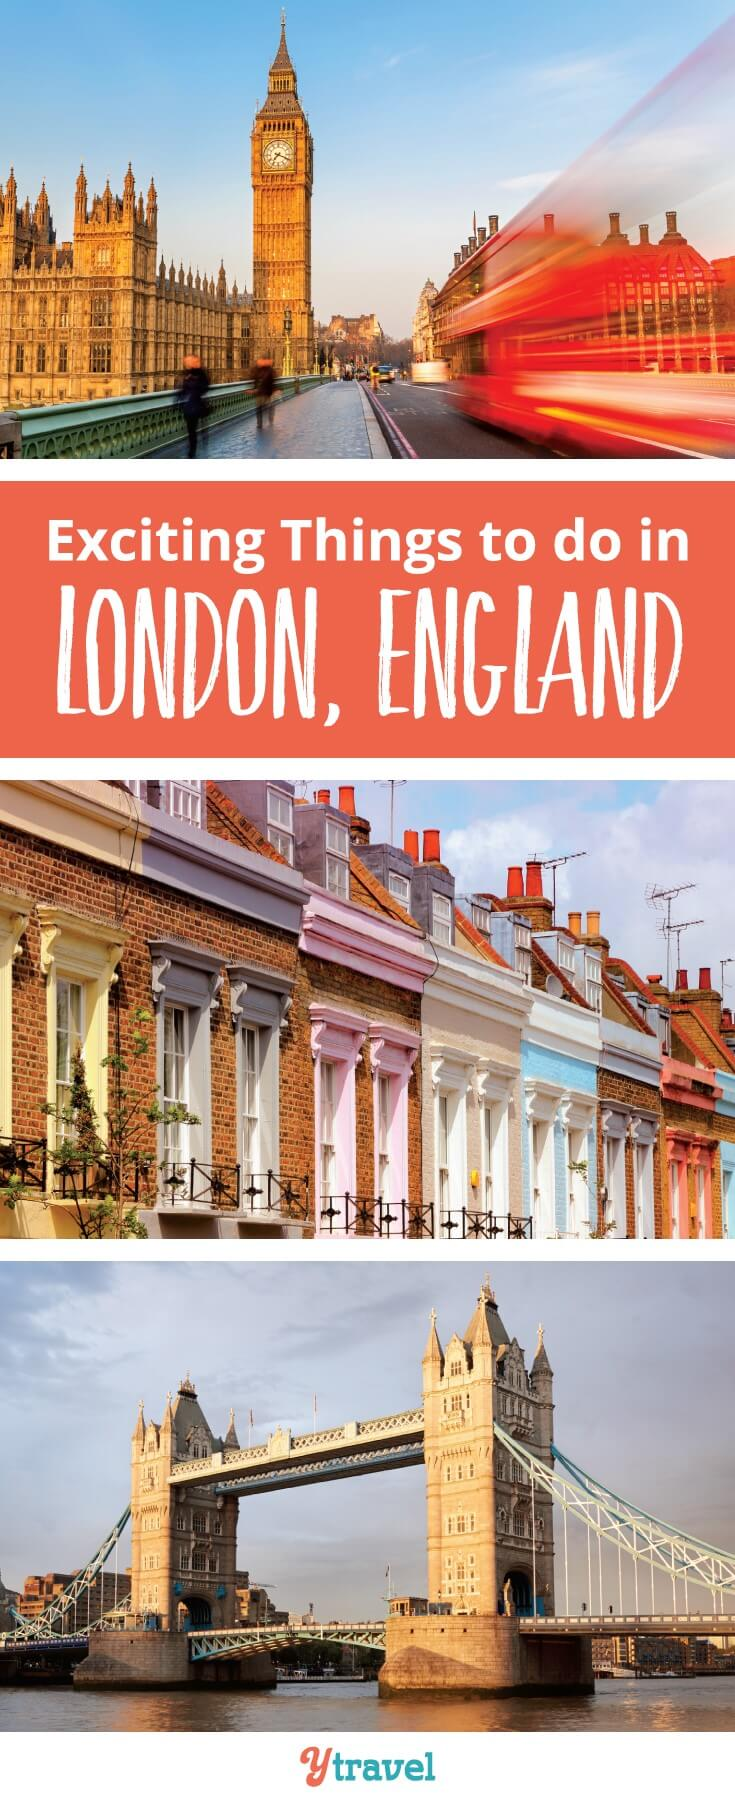 Planning a trip to the UK and looking for the best things to London? Check out this insider guide written by a local with London travel tips for you! #London #UK #LondonTravel